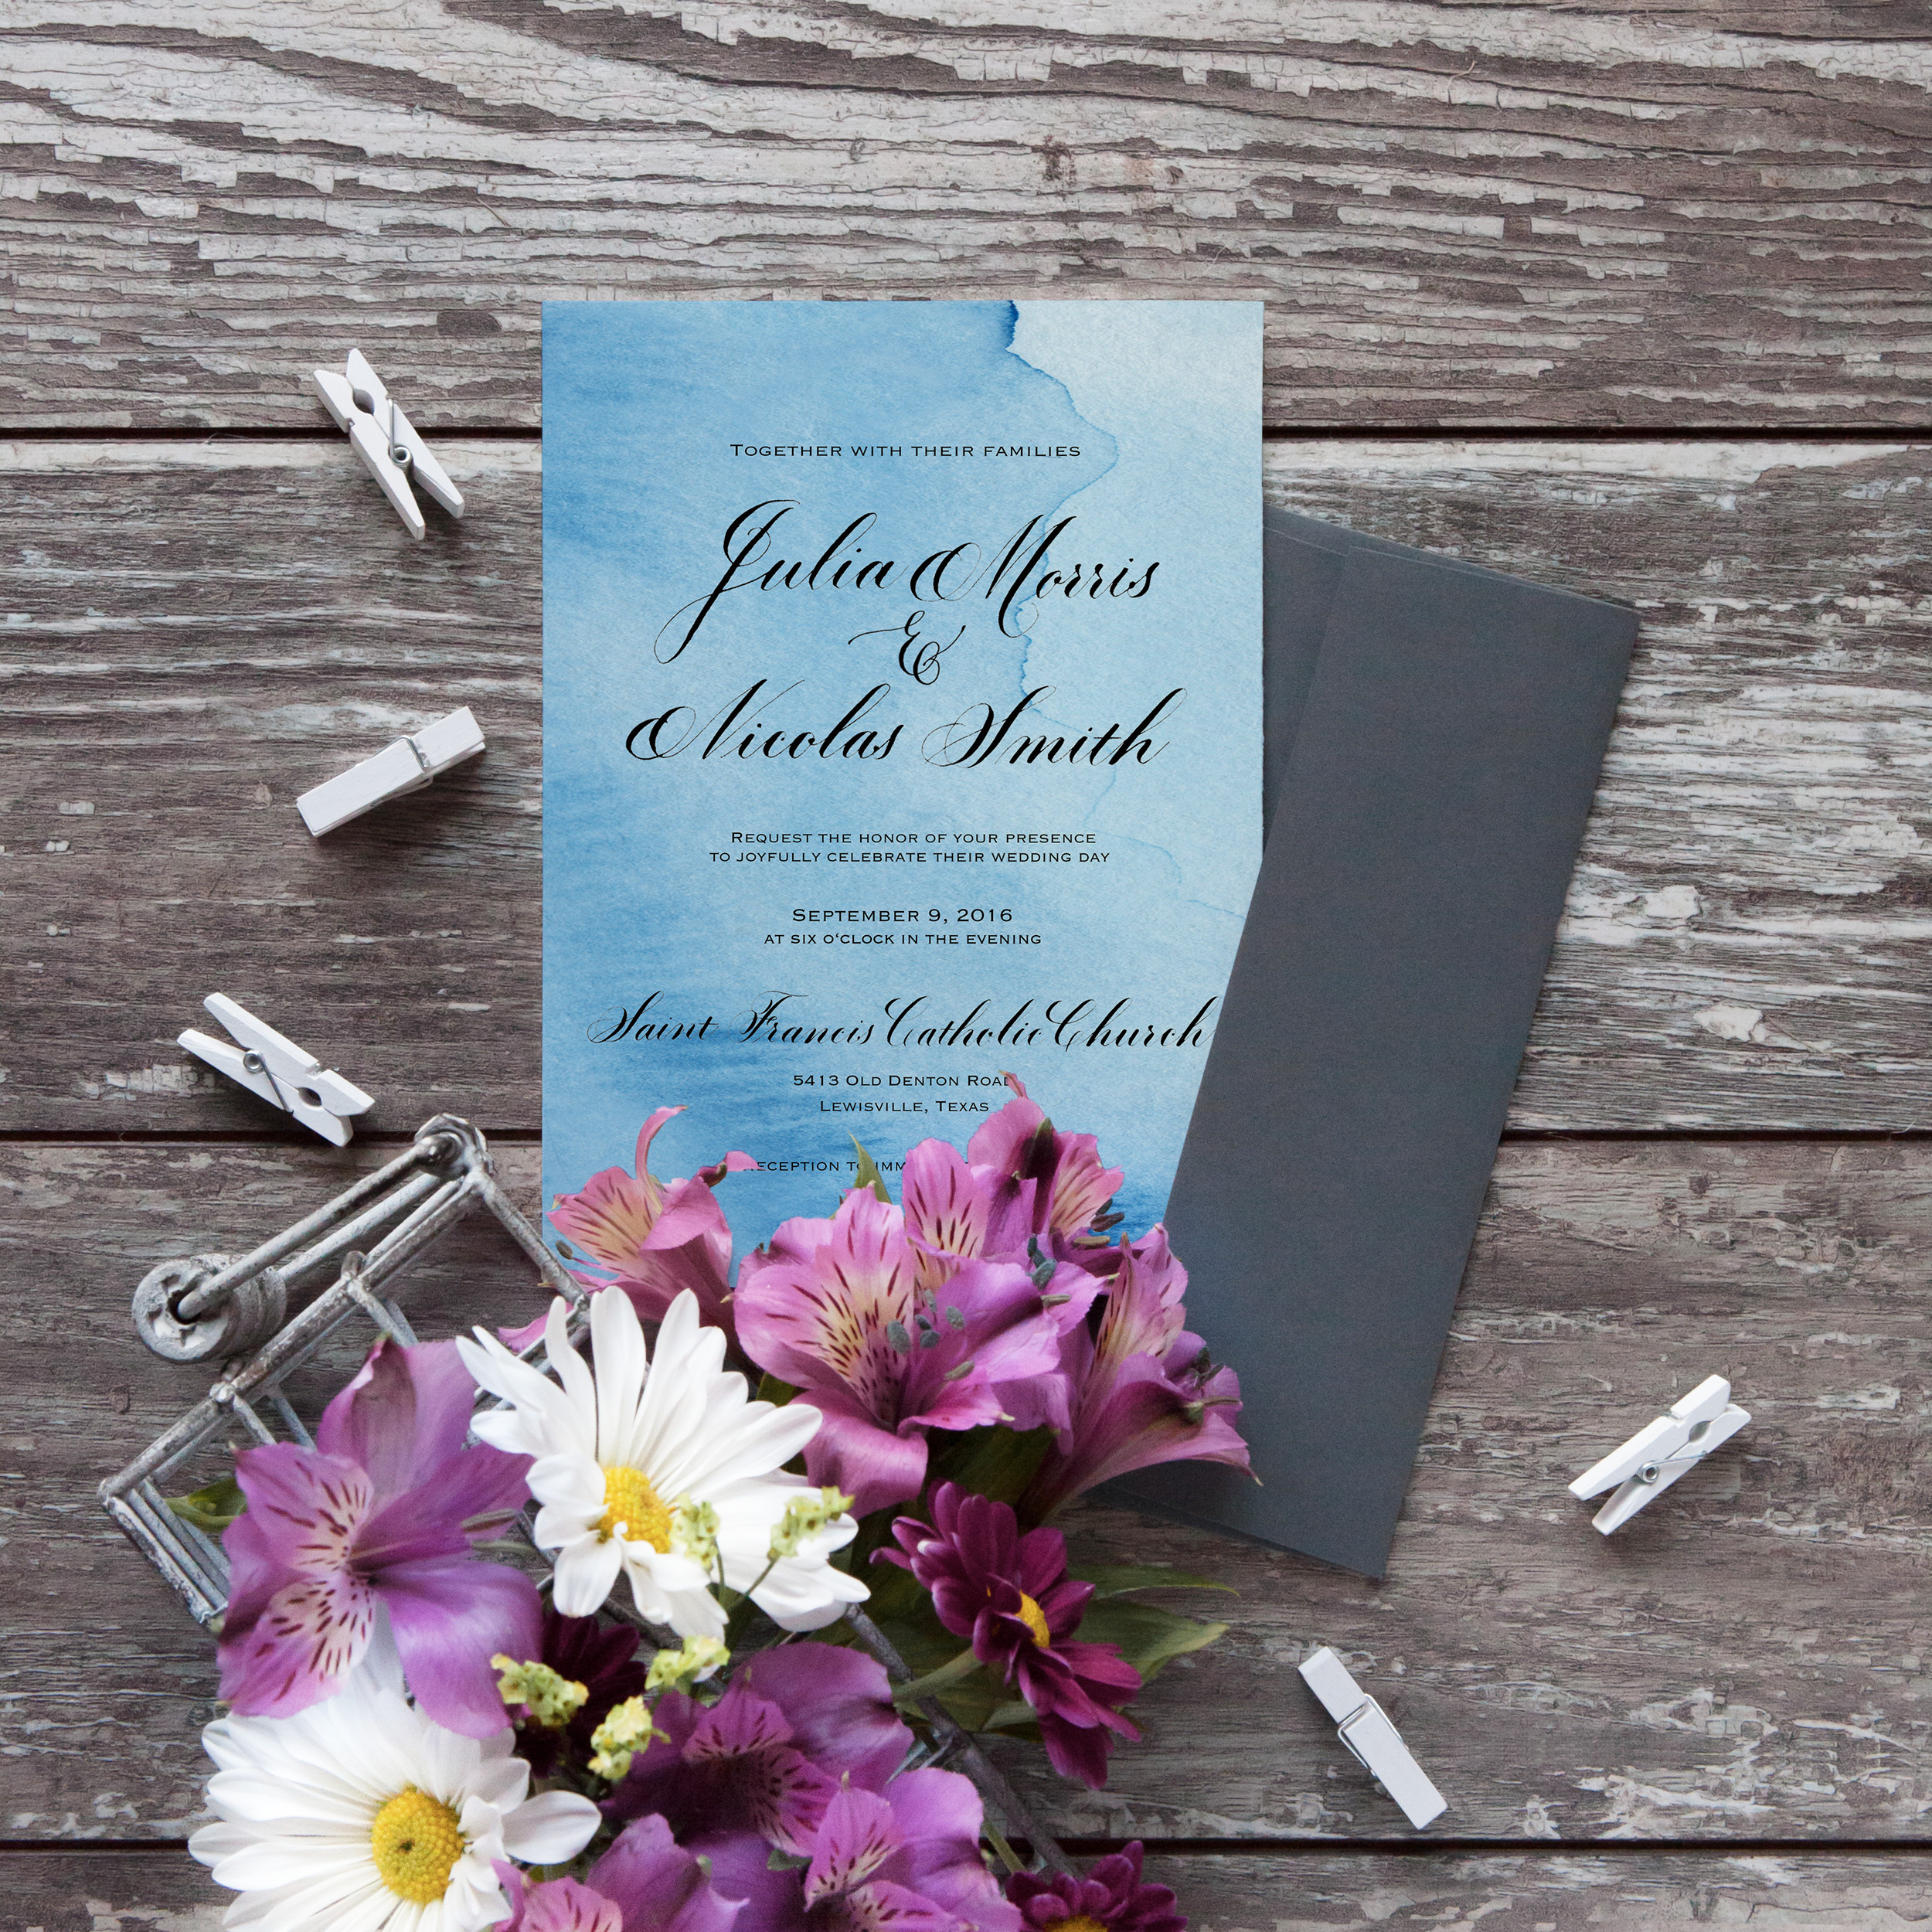 Wedding invitations with blue watercolor and black calligraphy.